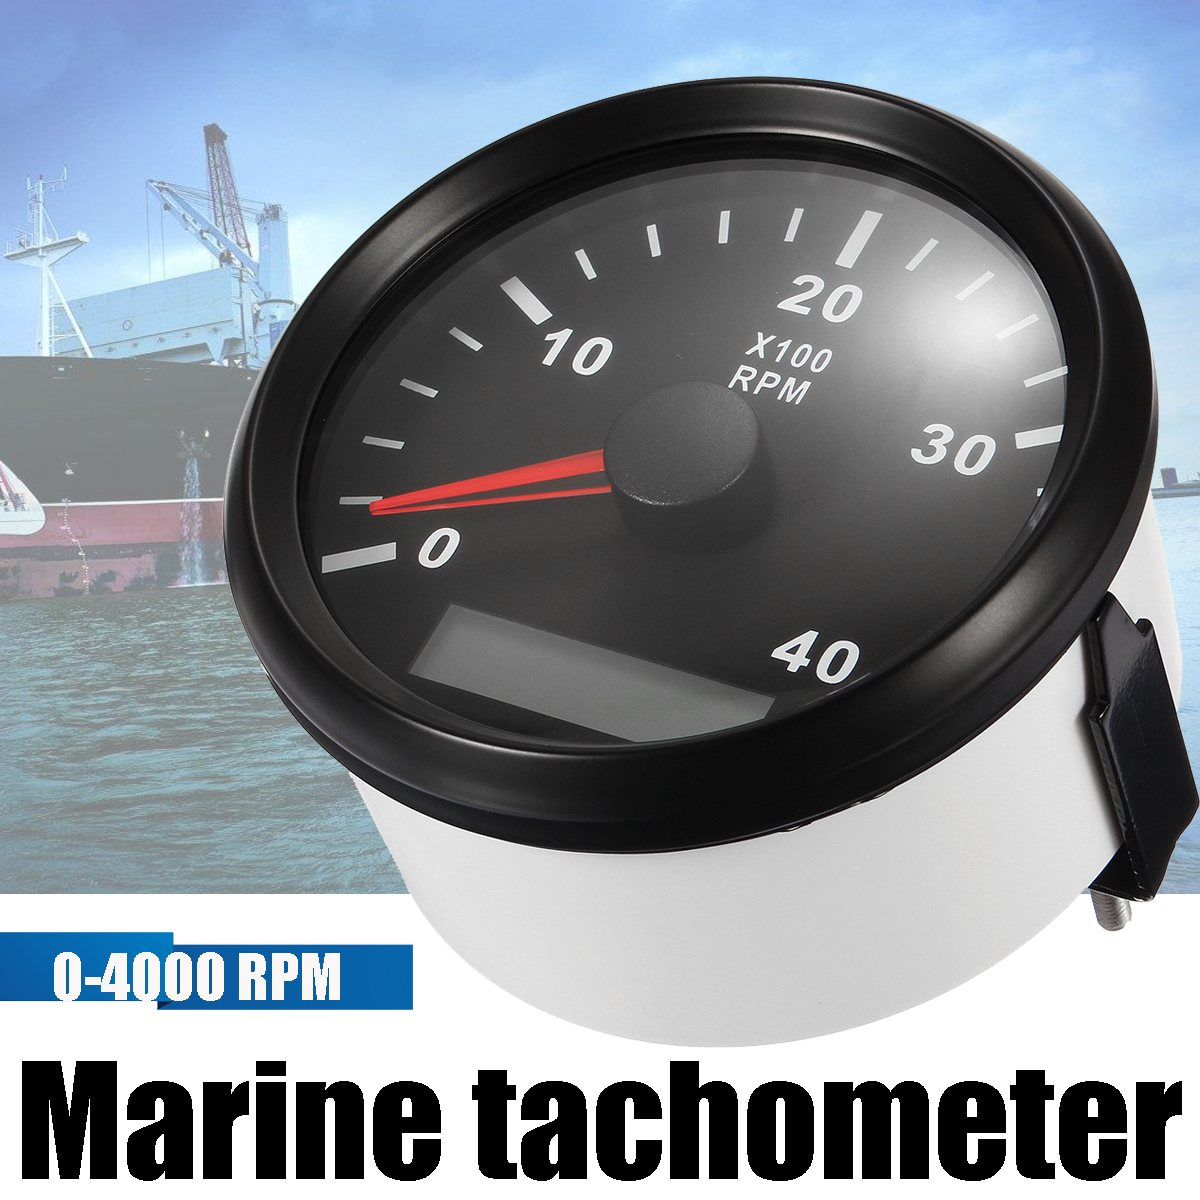 small resolution of 12 24v 0 4000 boat rpm 85m marine boat tachometer gauge lcd meter tacho hourmeter boat rpm white black with cable